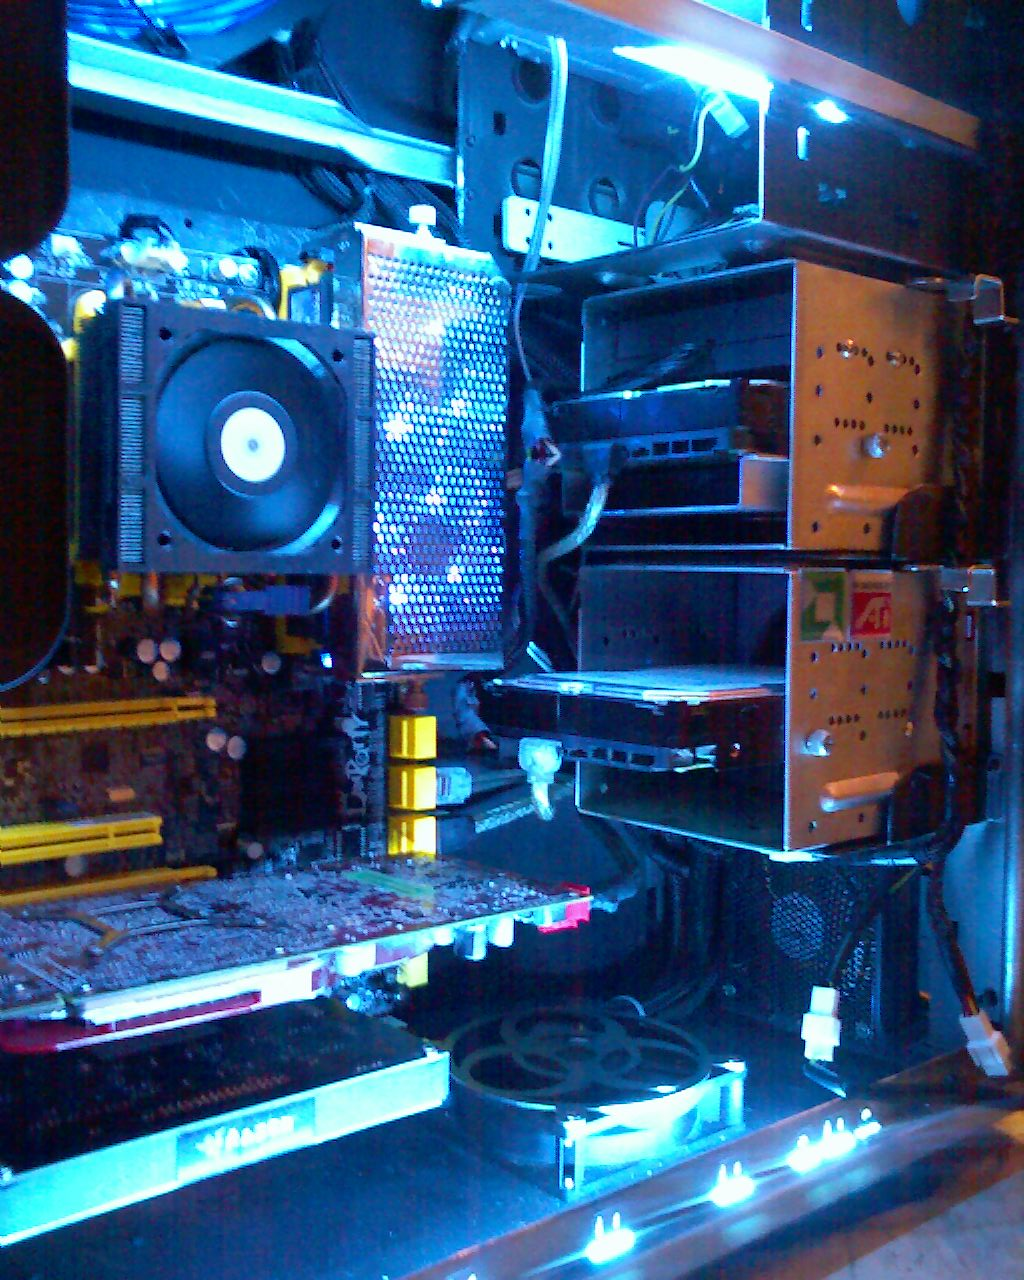 Sorry for the poor picture quality, but I wanted to include pics of the PSU and top exhaust fan